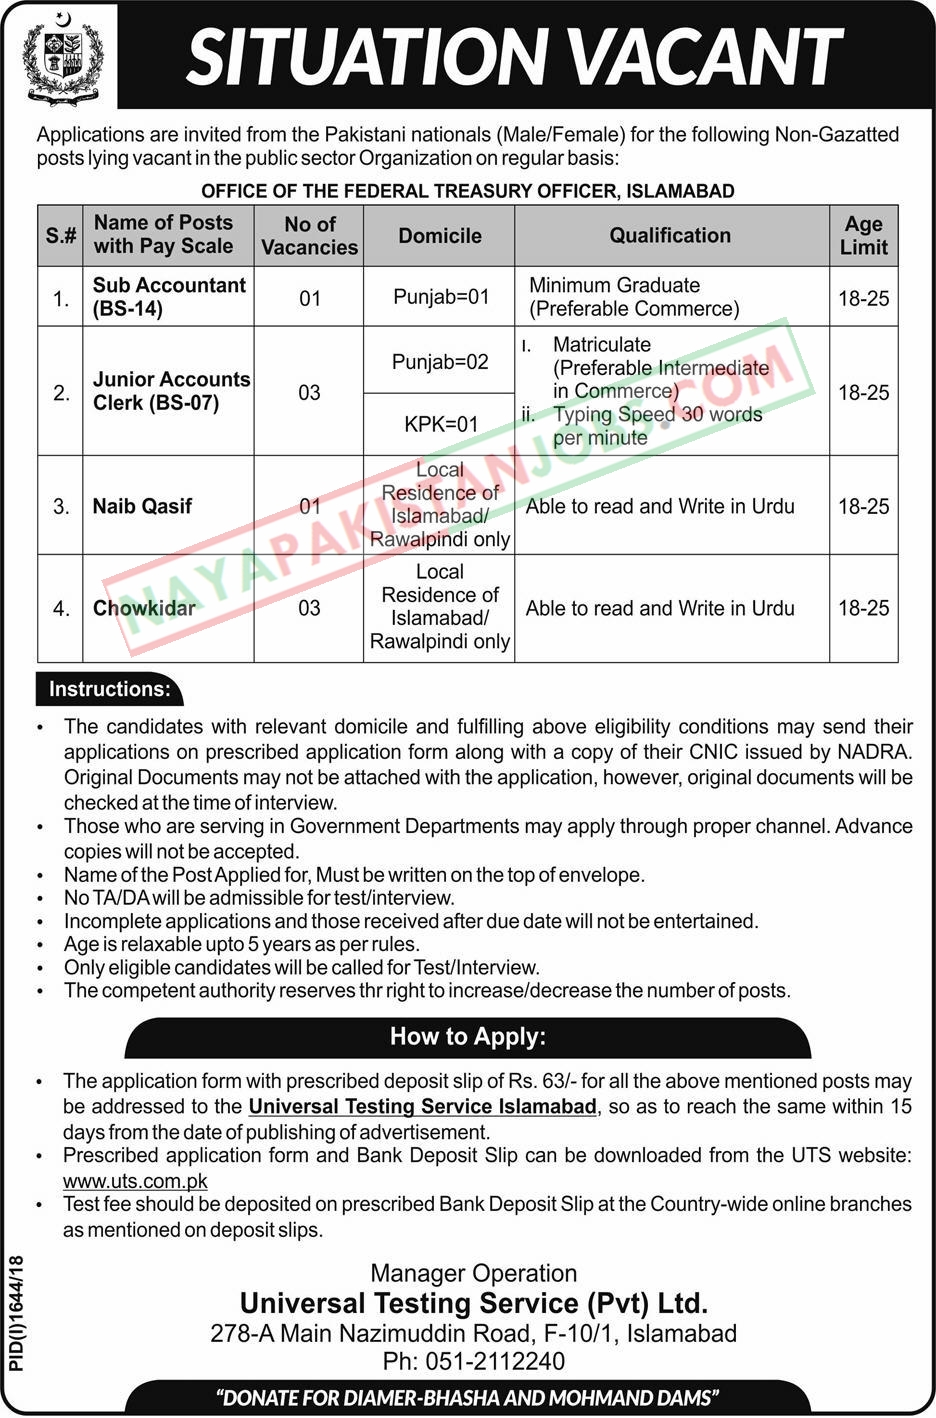 Latest Vacancies Announced in Office of the Federal Treasury Officer Islamabad 14 October 2018 - Naya Pakistan